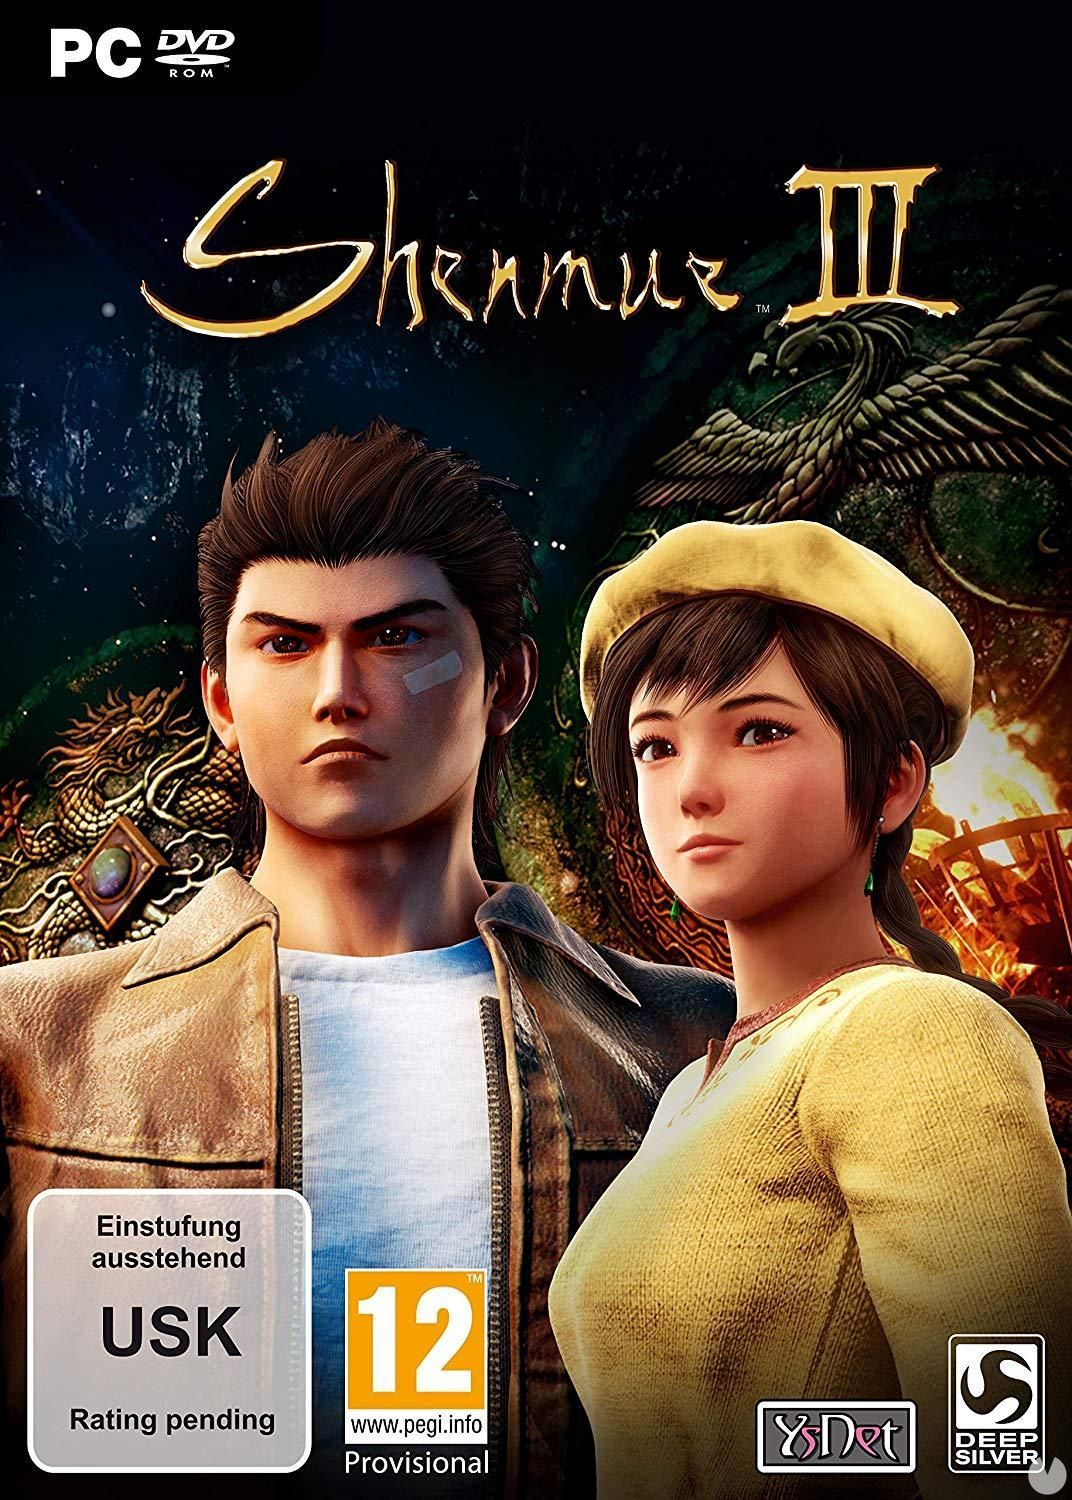 So it will be the cover of Shenmue III